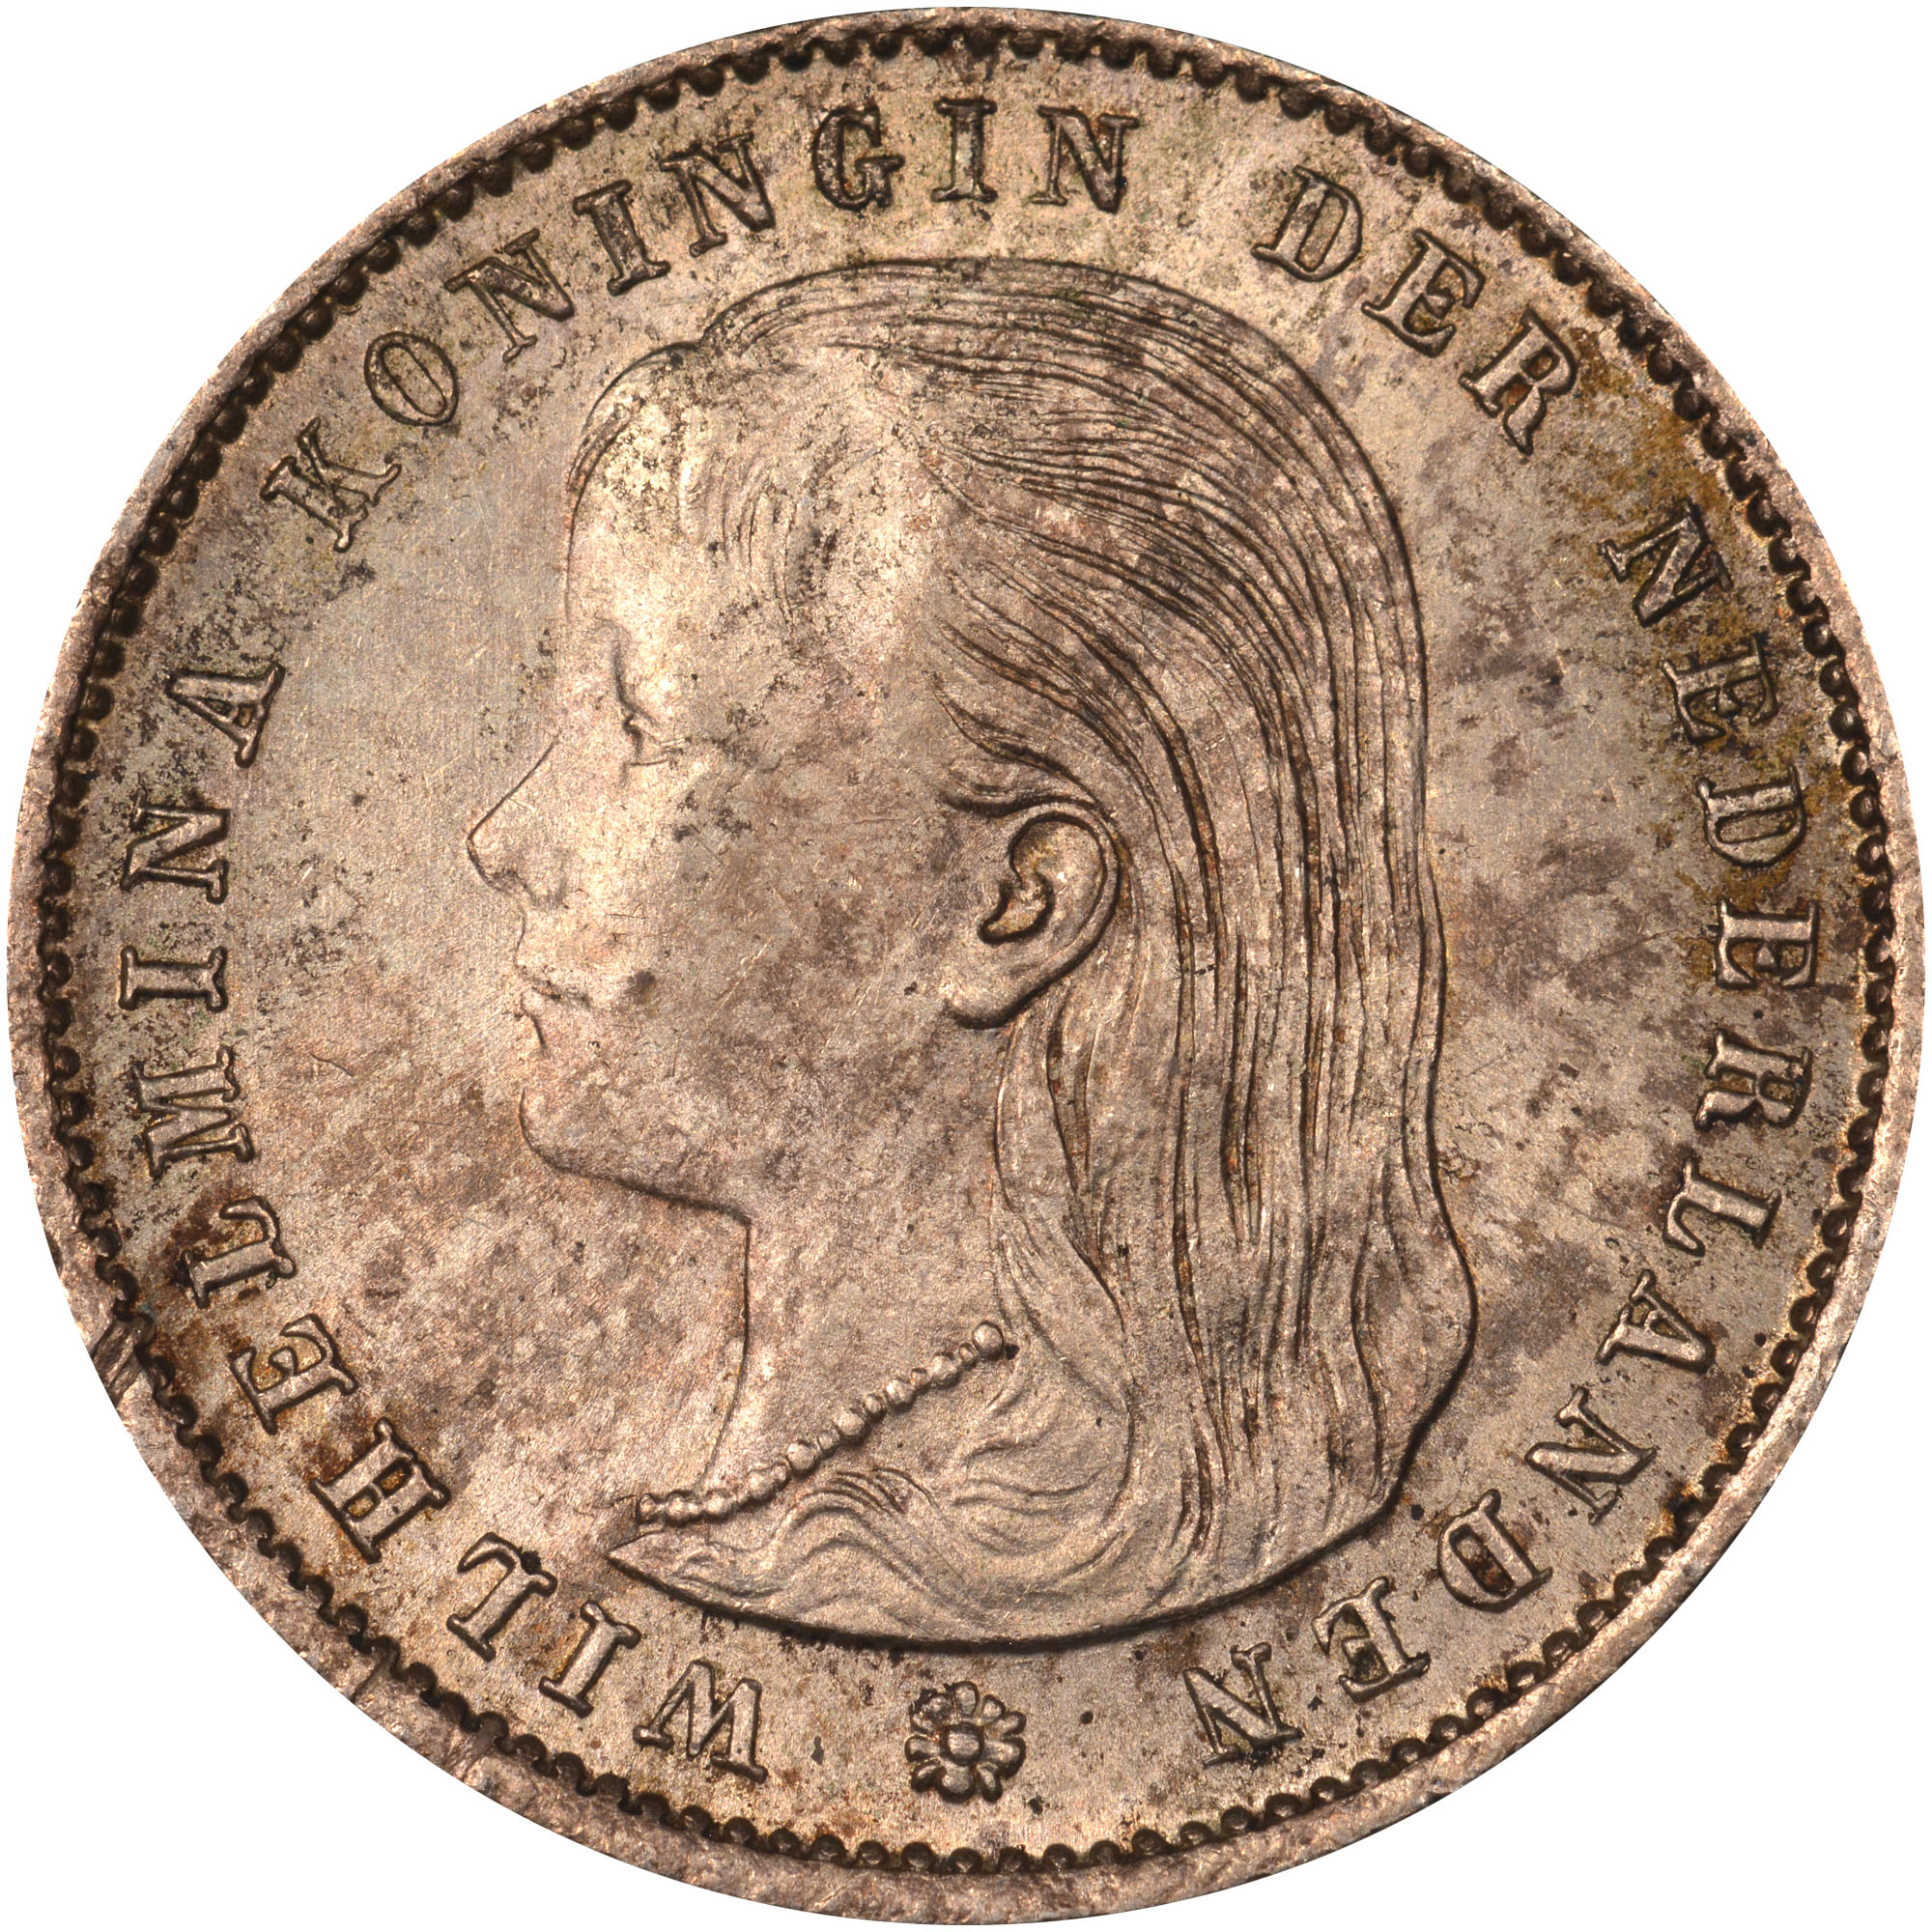 Netherlands 25 Cents obverse